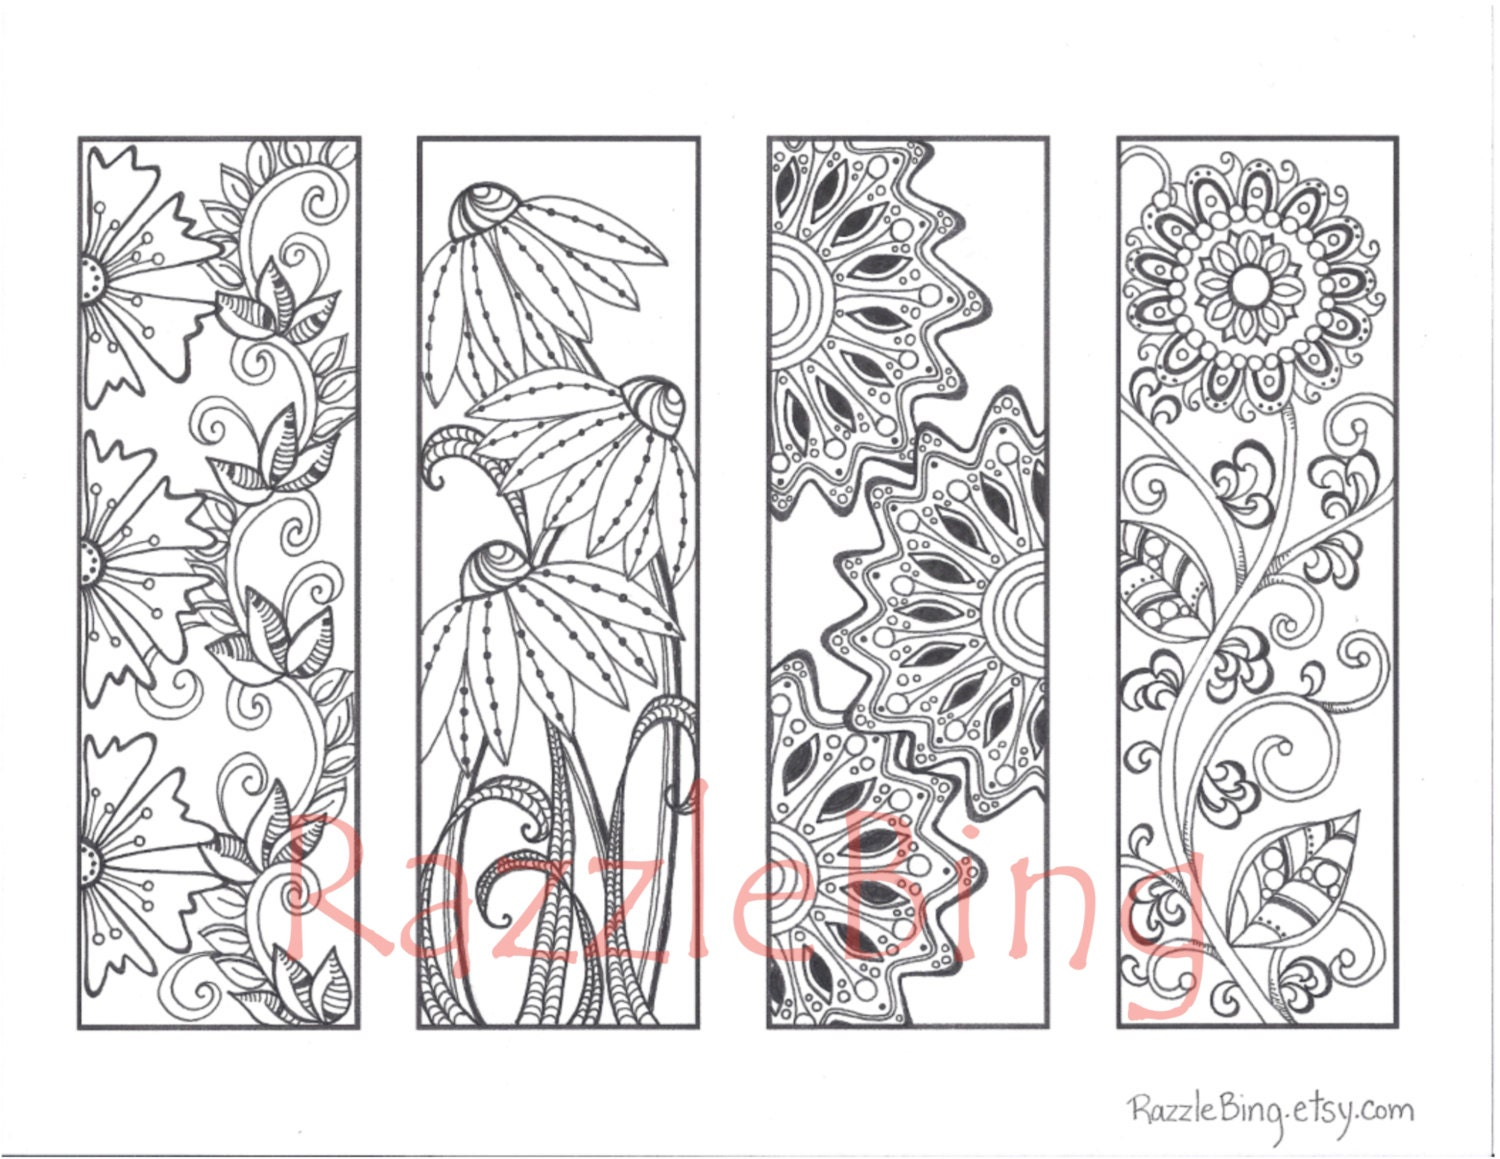 It's just a graphic of Gratifying Printable Bookmarks to Color